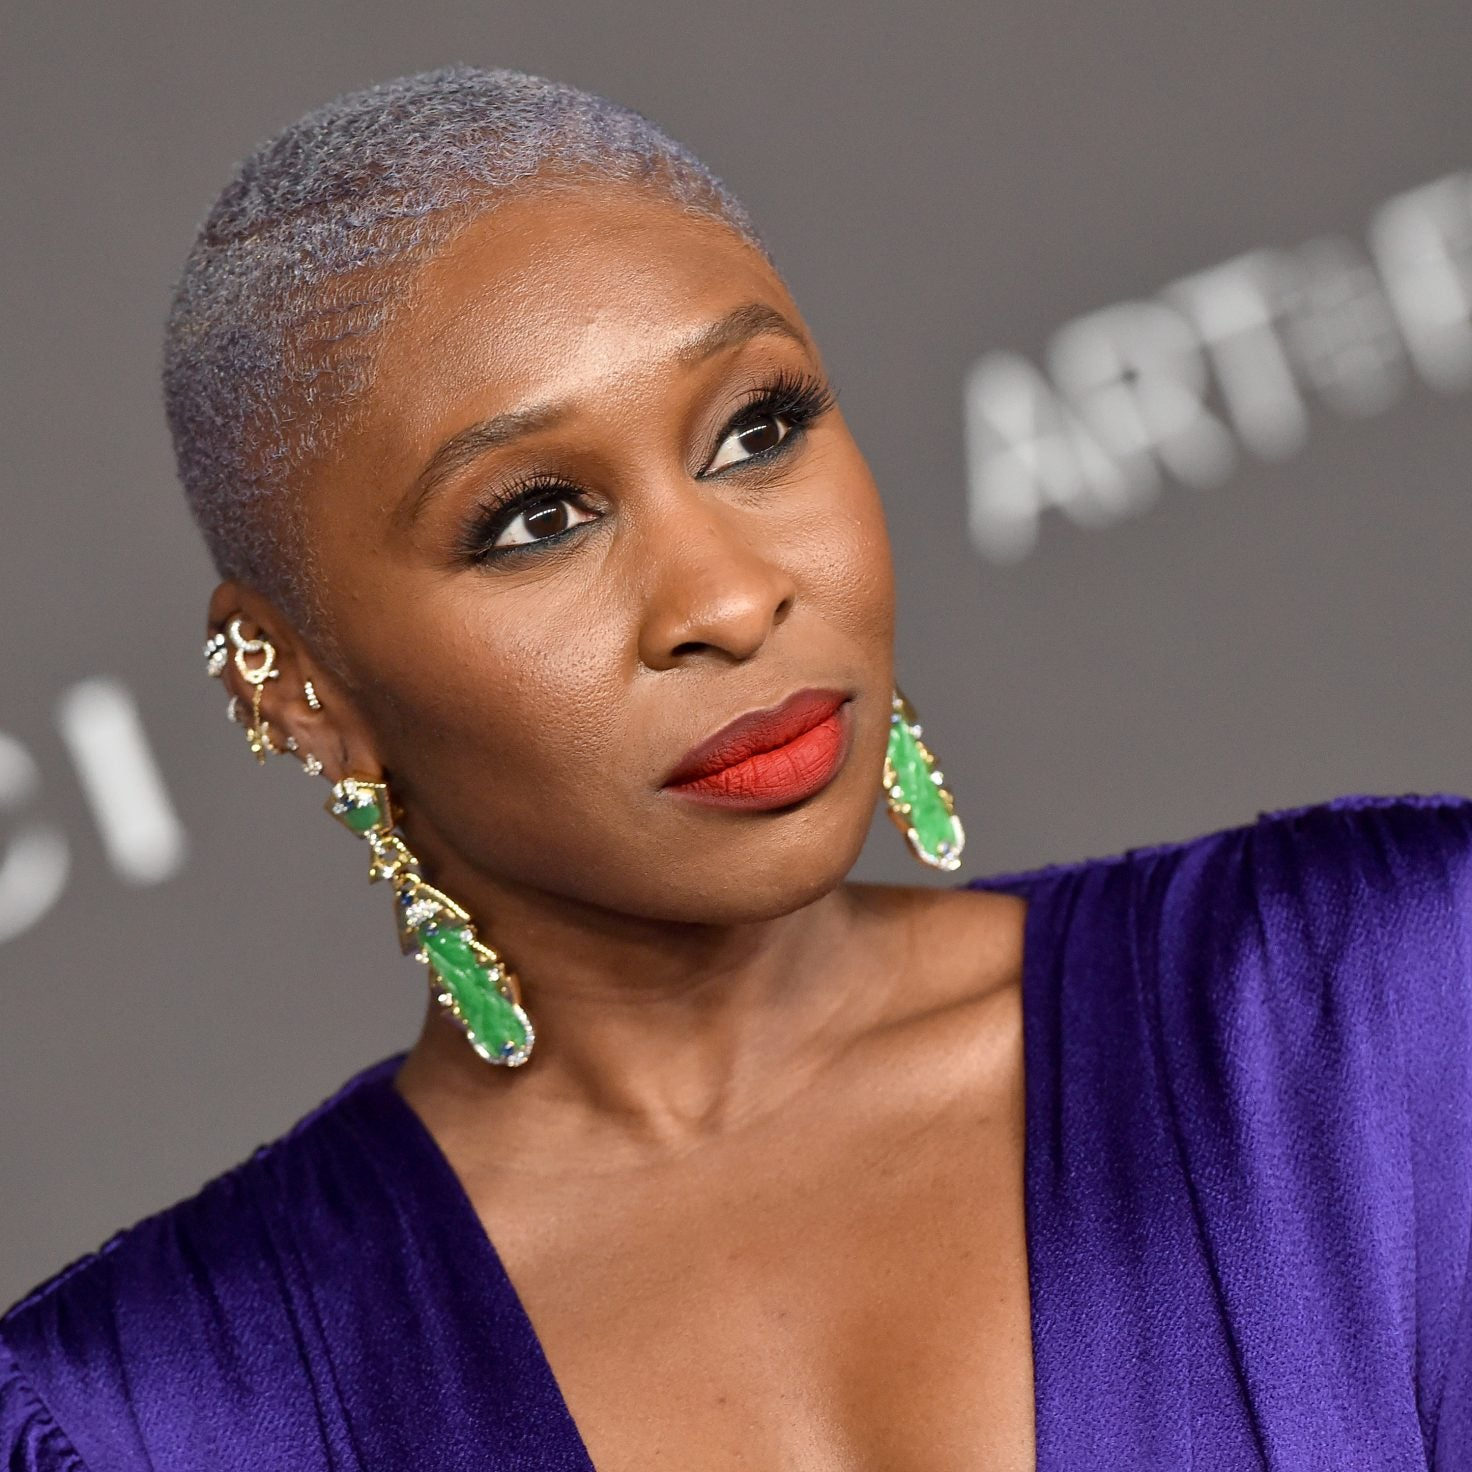 The Only Black Acting Nominee Cynthia Erivo Will Also Perform At The Oscars